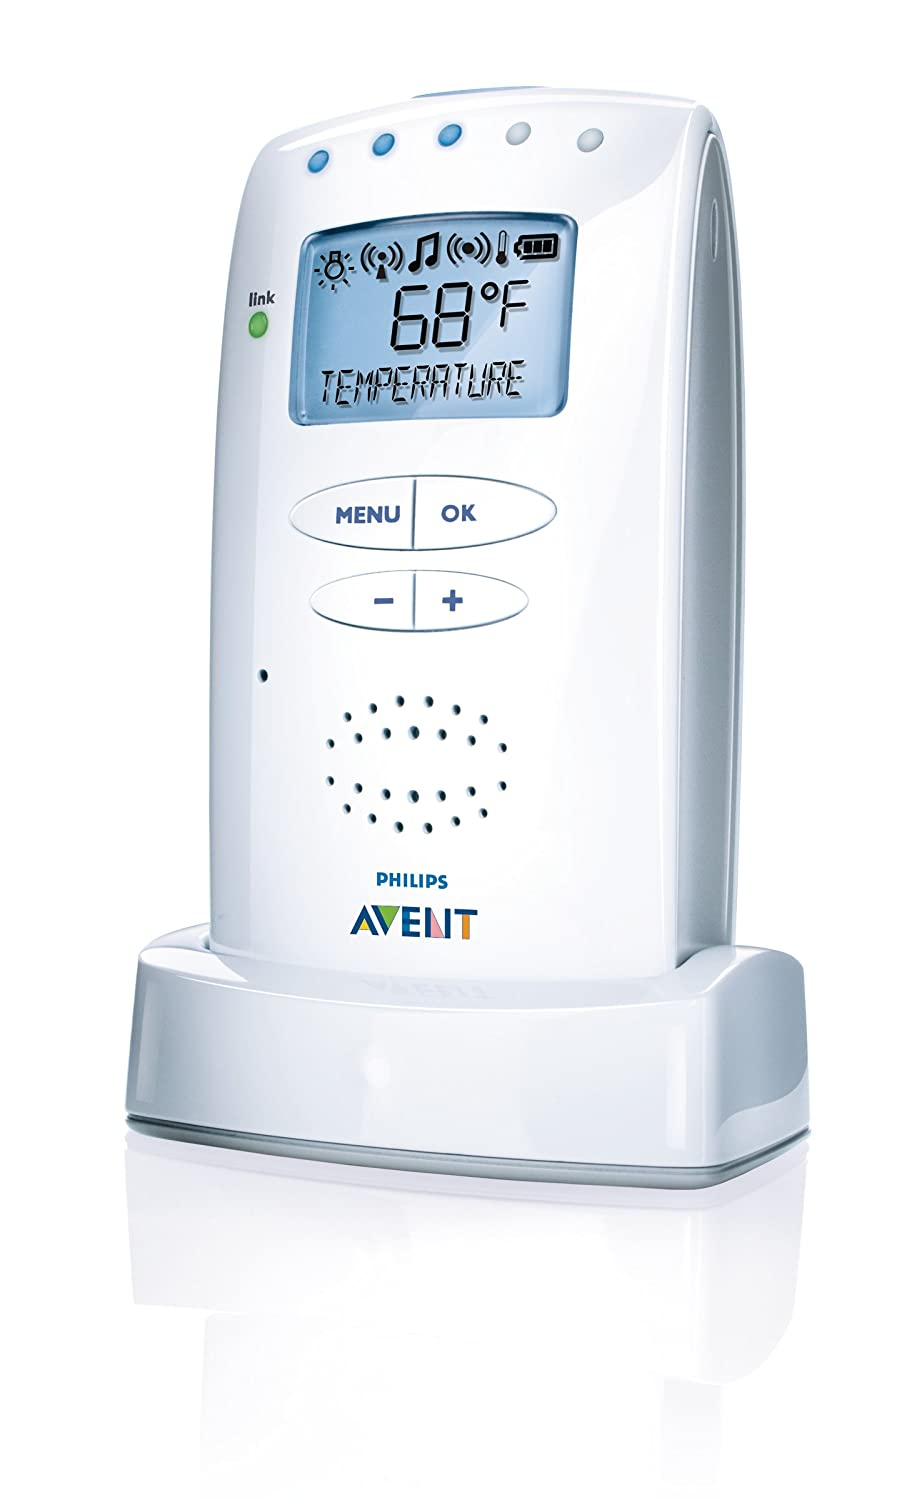 Philips AVENT monitor